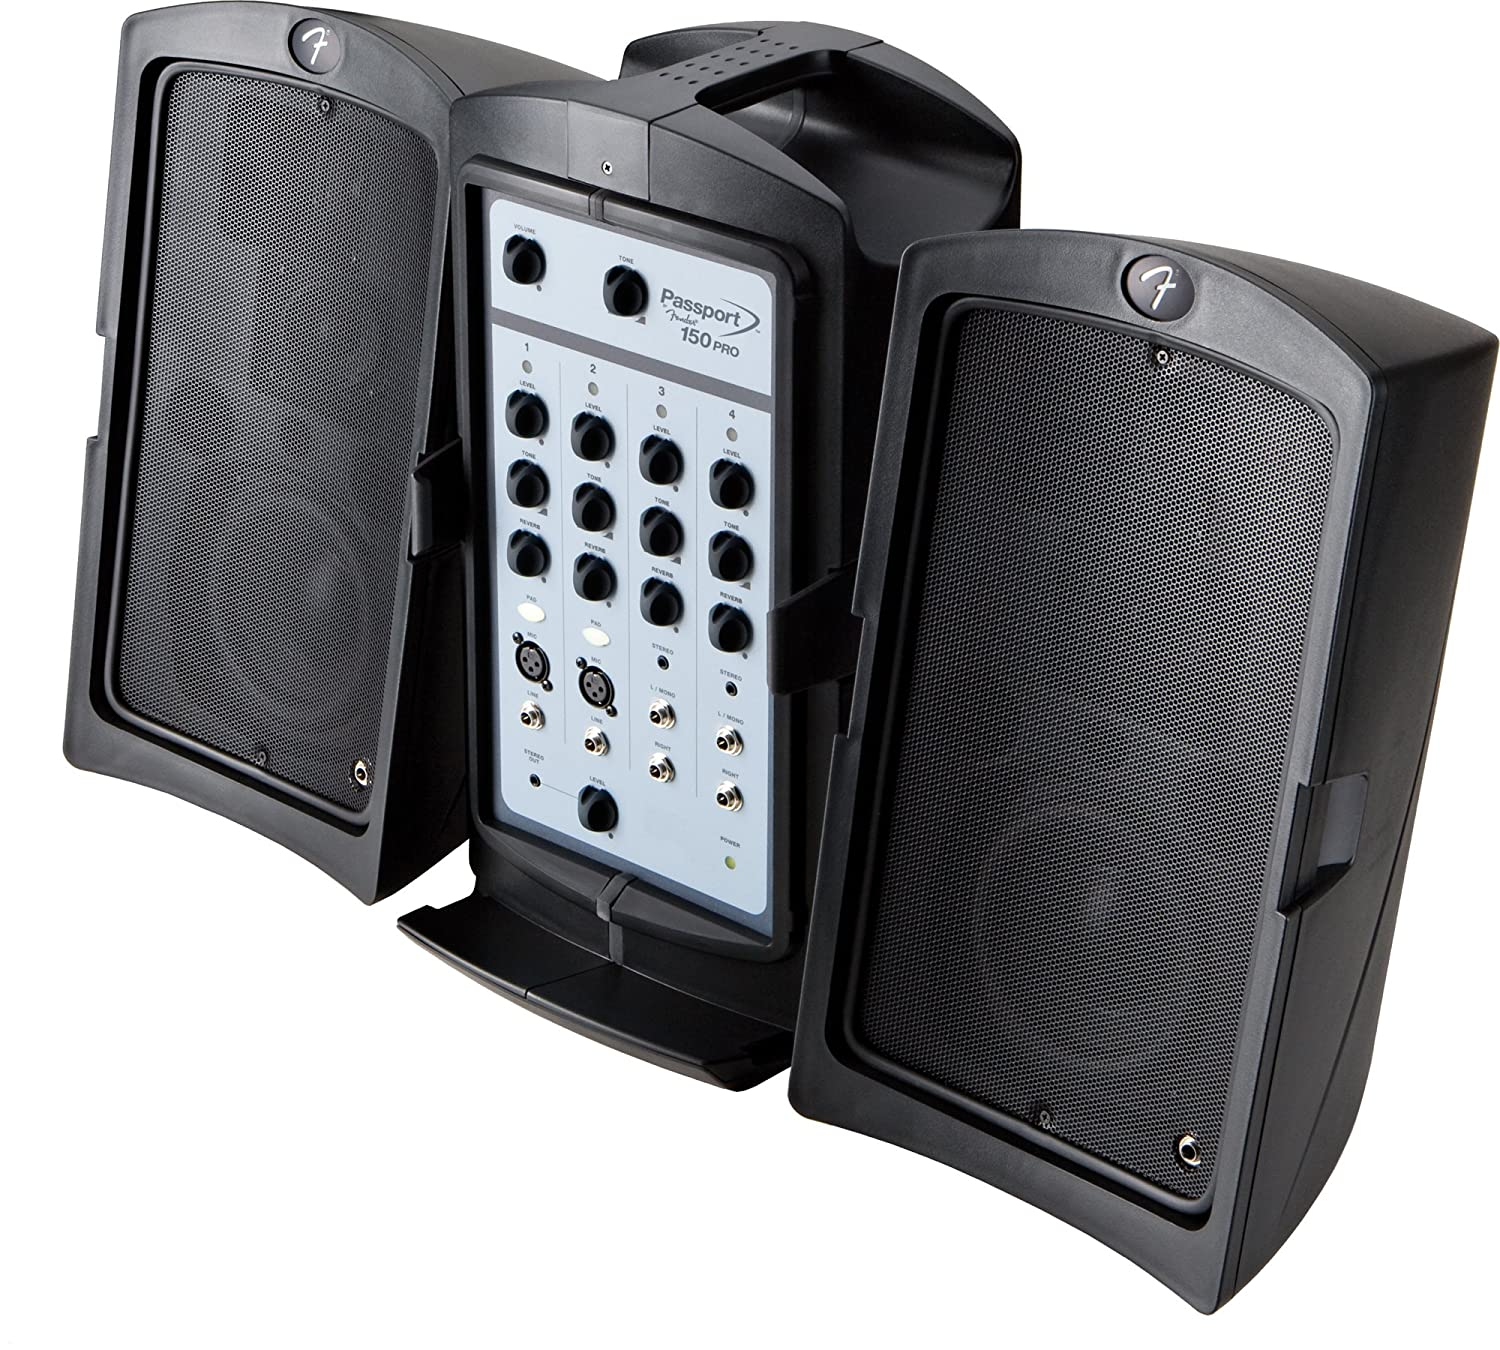 fender passport pd 150 manual owners manual book u2022 rh userguidesearch today Fender Passport 300 Pro Portable PA System Fender Passport 500 Pro Audio